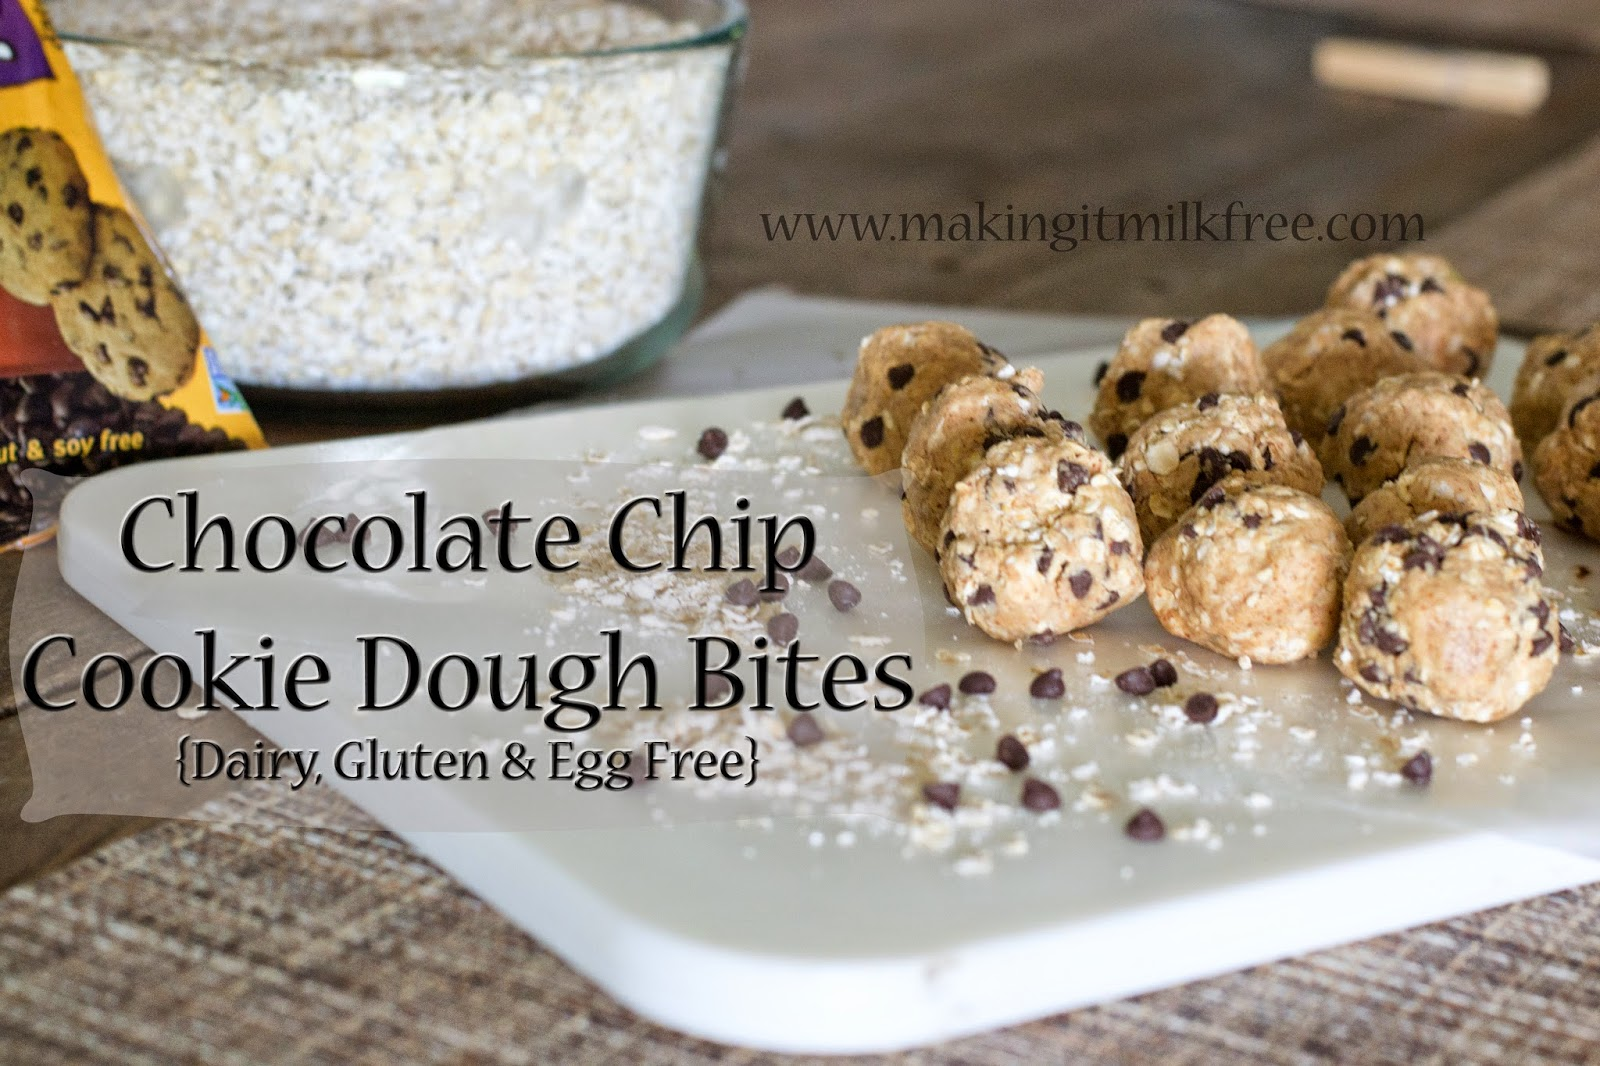 #glutenfree #dairyfree #eggfree #cookiedough #energybites #treats #snacks #funfood